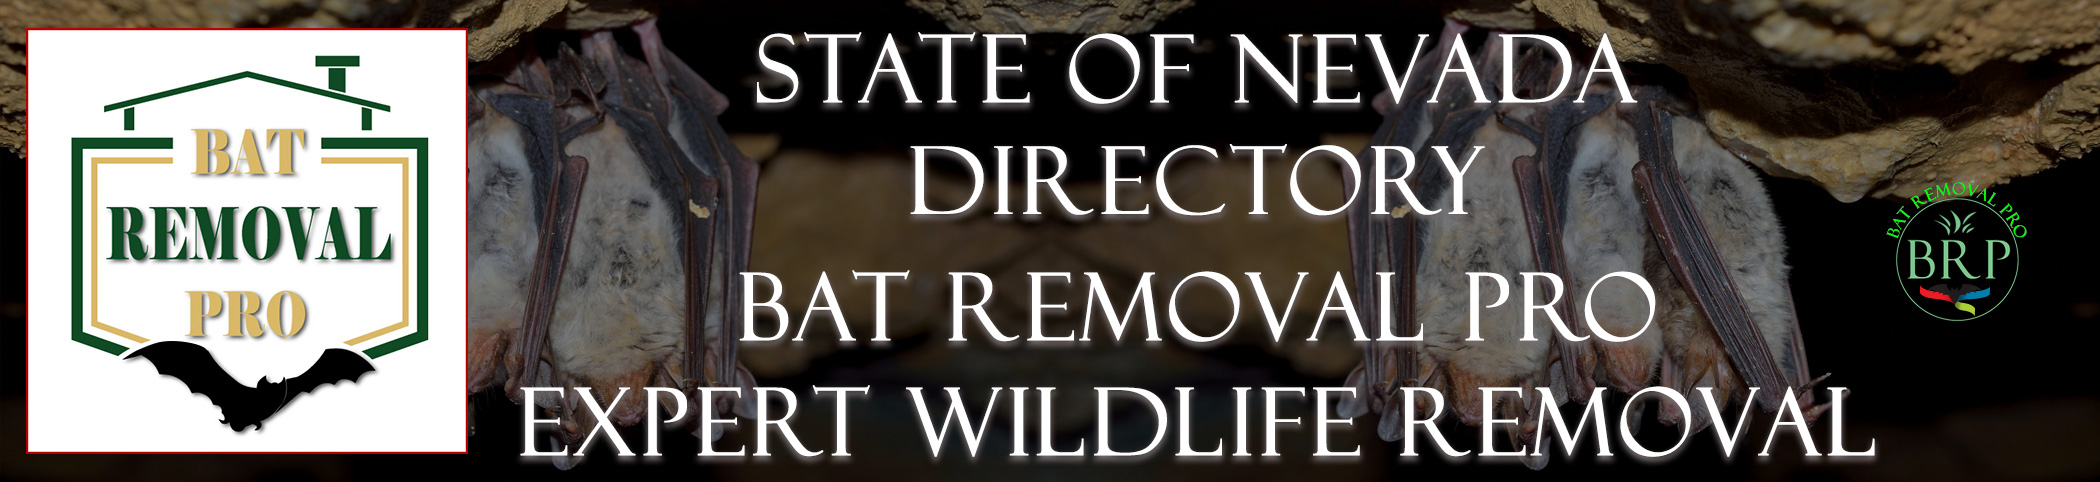 nevada-bat-removal-at-bat-removal-pro-header-image